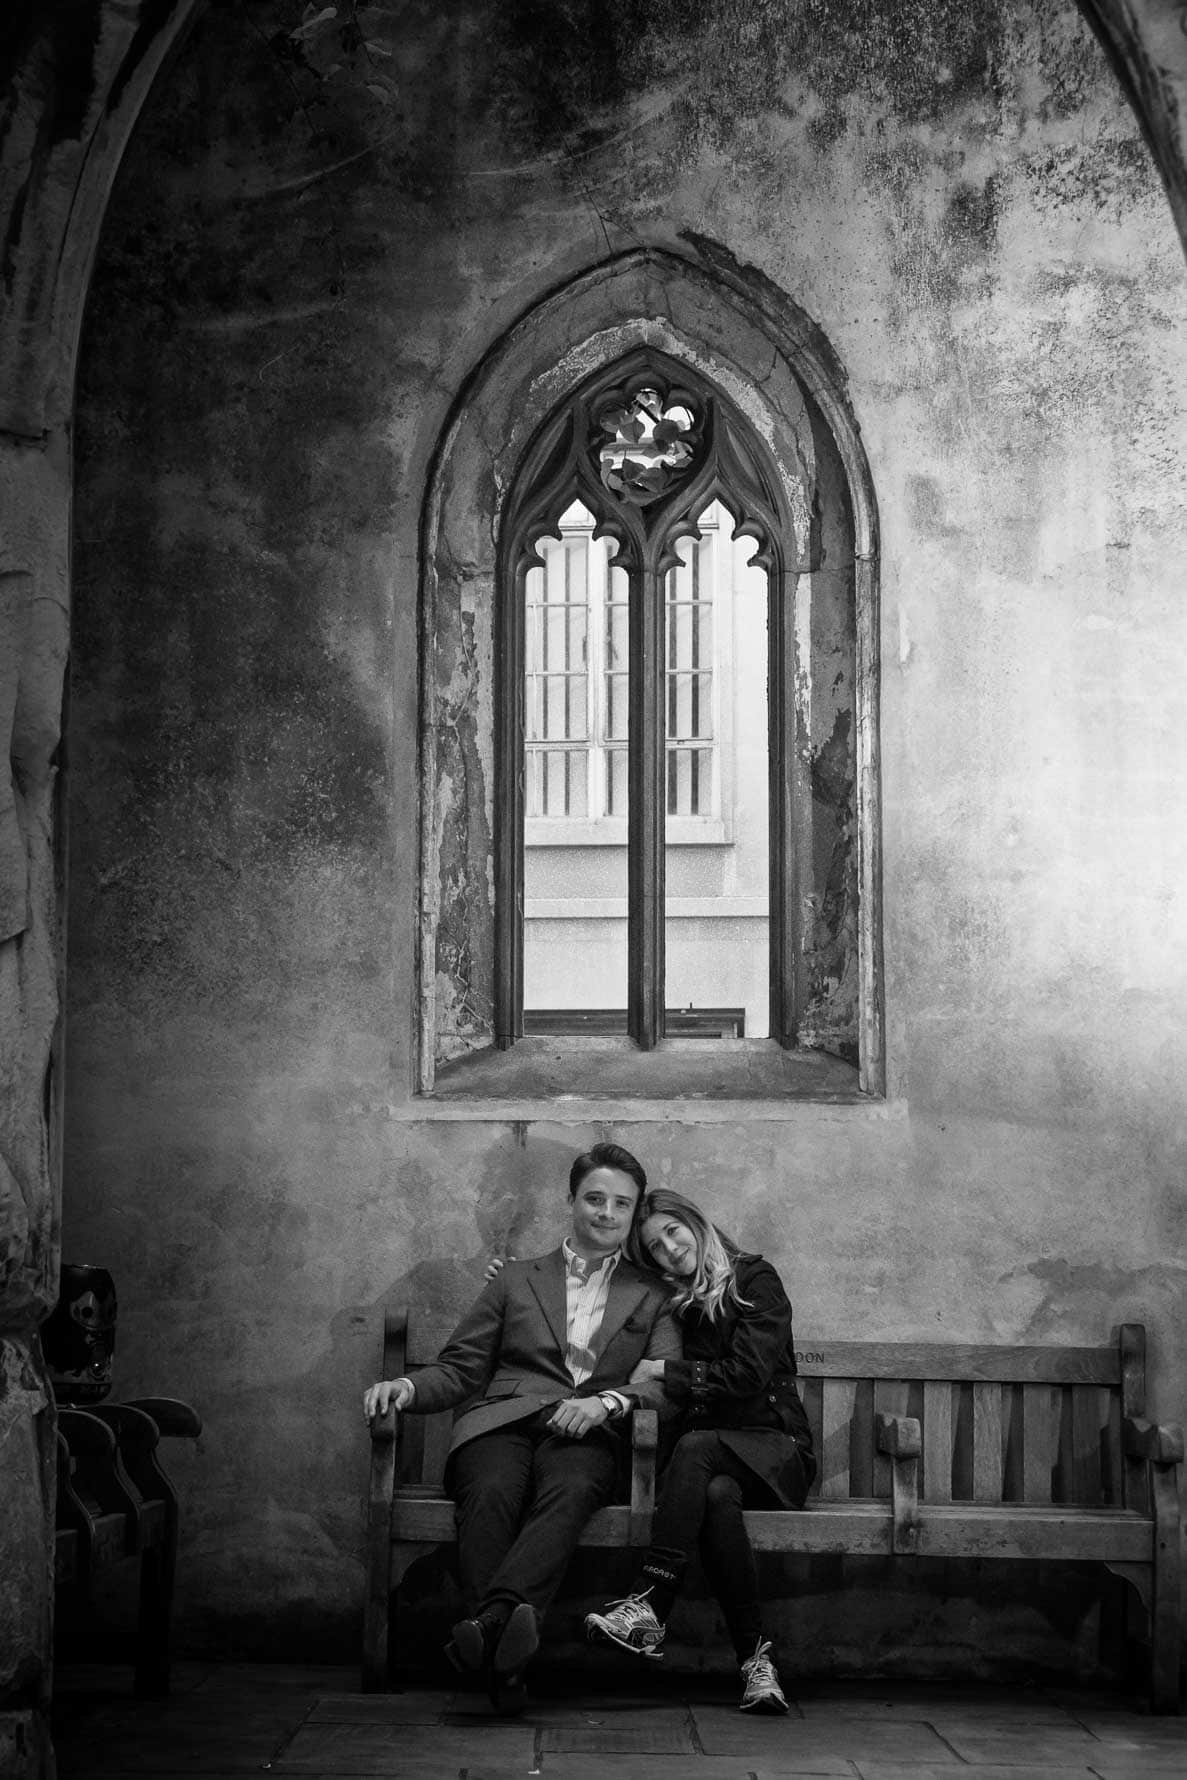 Cuddling on a bench in Paula and Oliver resting on a bench in St Dunstan-in-the-East